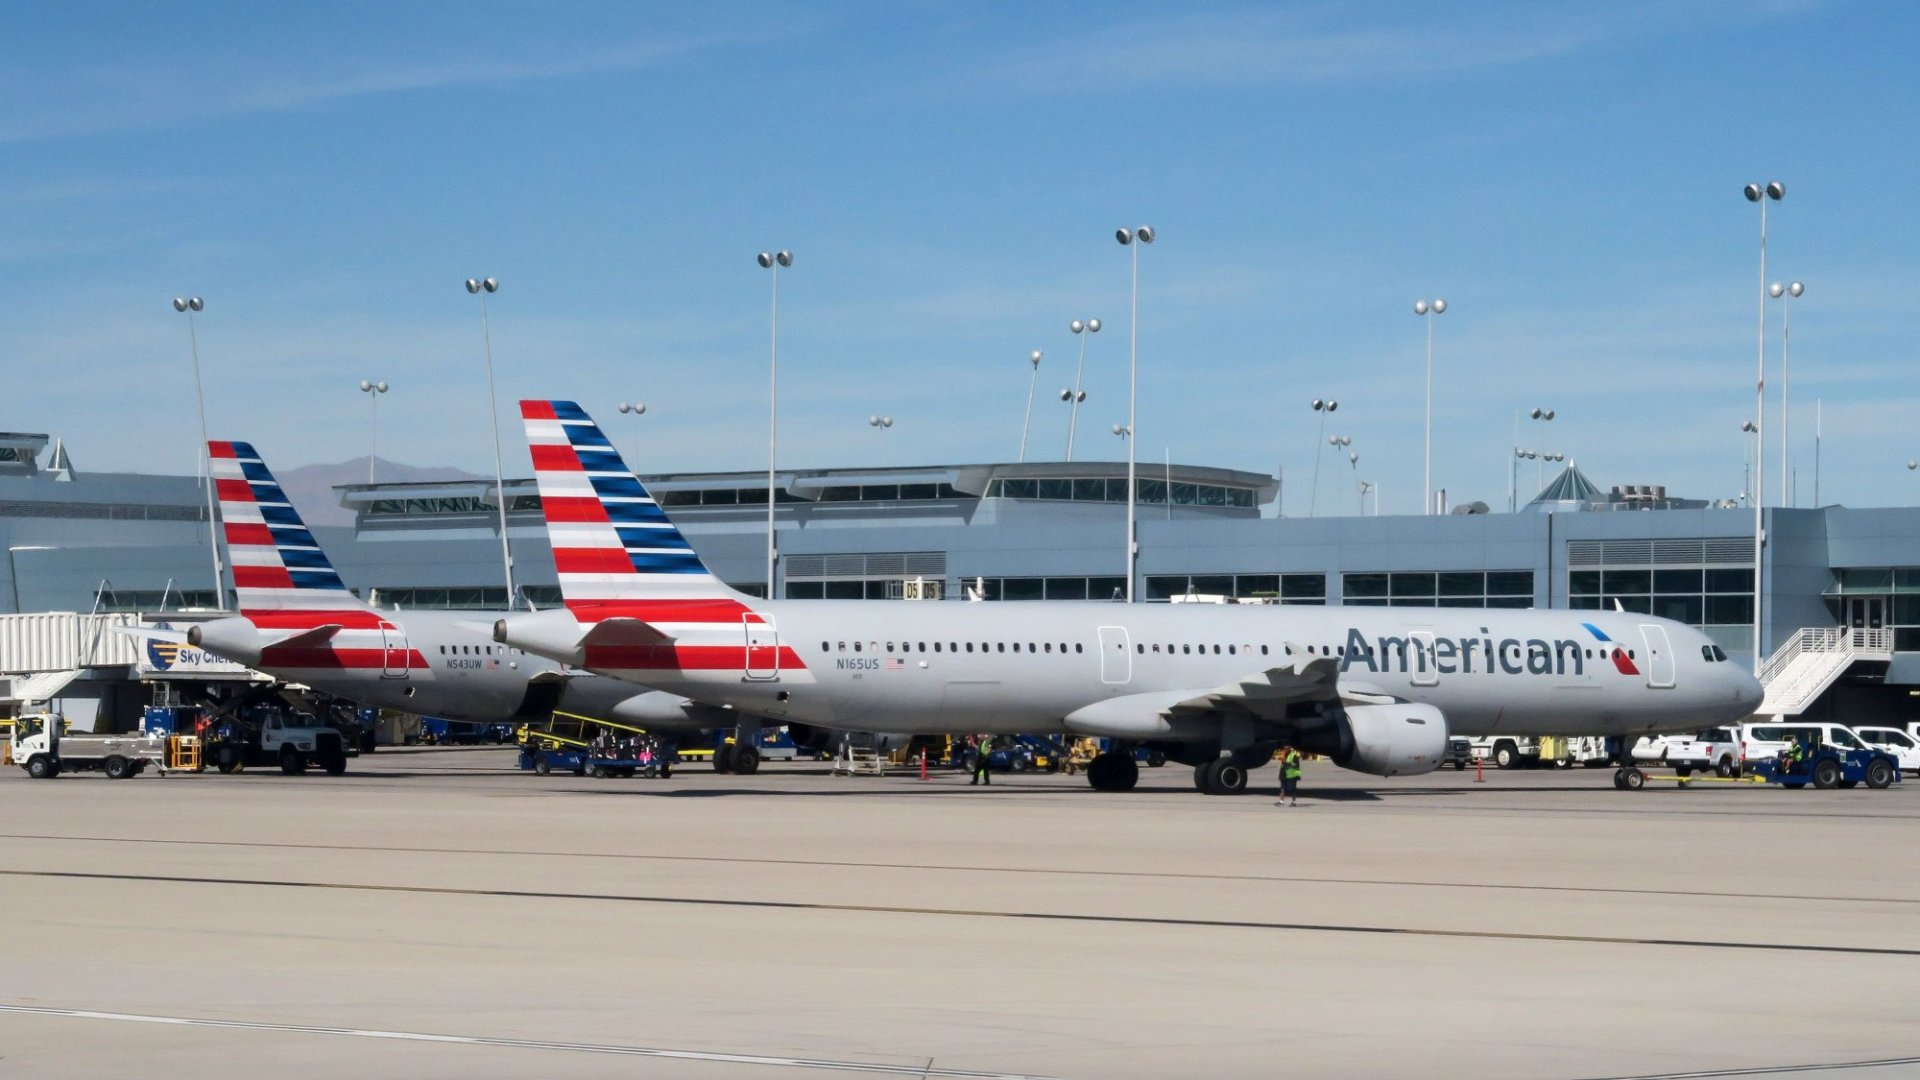 American Airlines Just Reduced the Amount of Legroom on Its Newest Planes (Yes, in First Class Too)